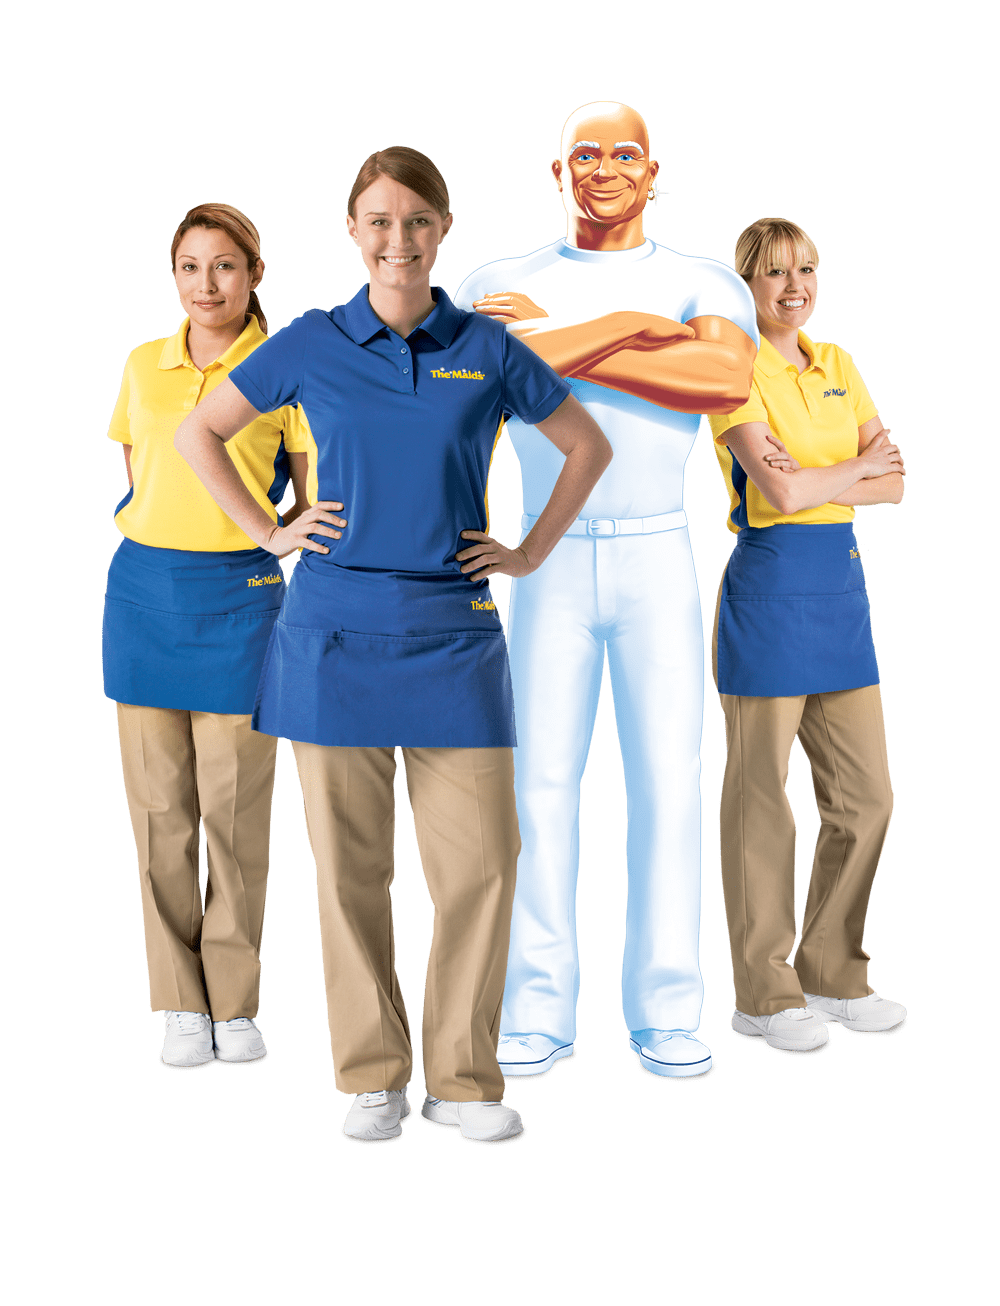 The Maids House Cleaning - The Maids in Colorado Springs Home Cleaning